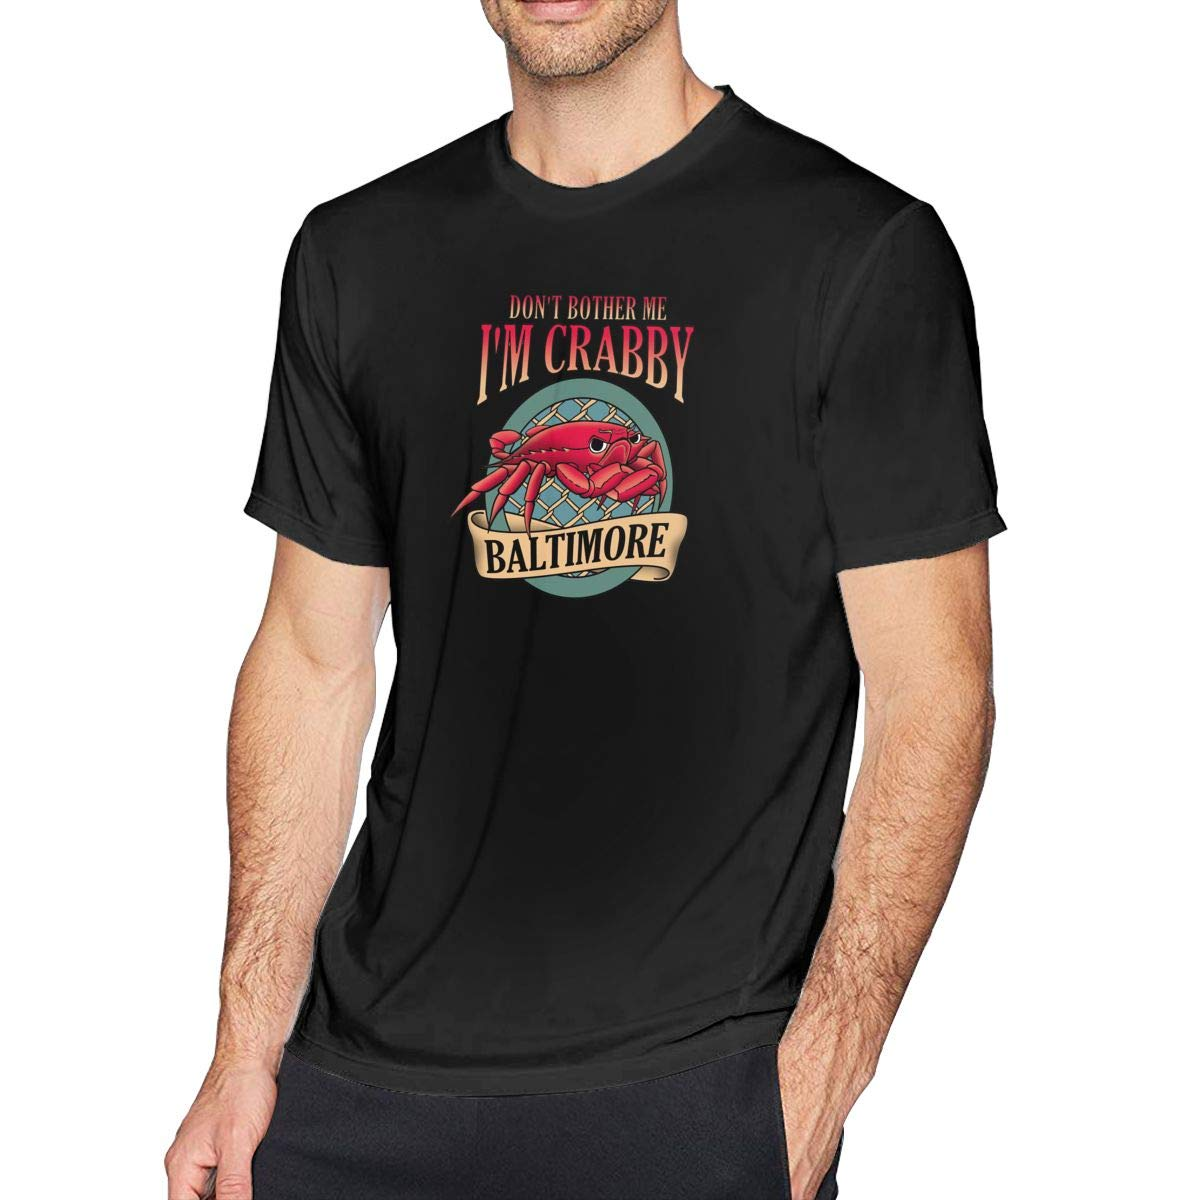 Dont Bother Me Im Crabby Mens Casual Slim Fit Short Sleeve T-Shirt 100/% Cotton Tee Tops